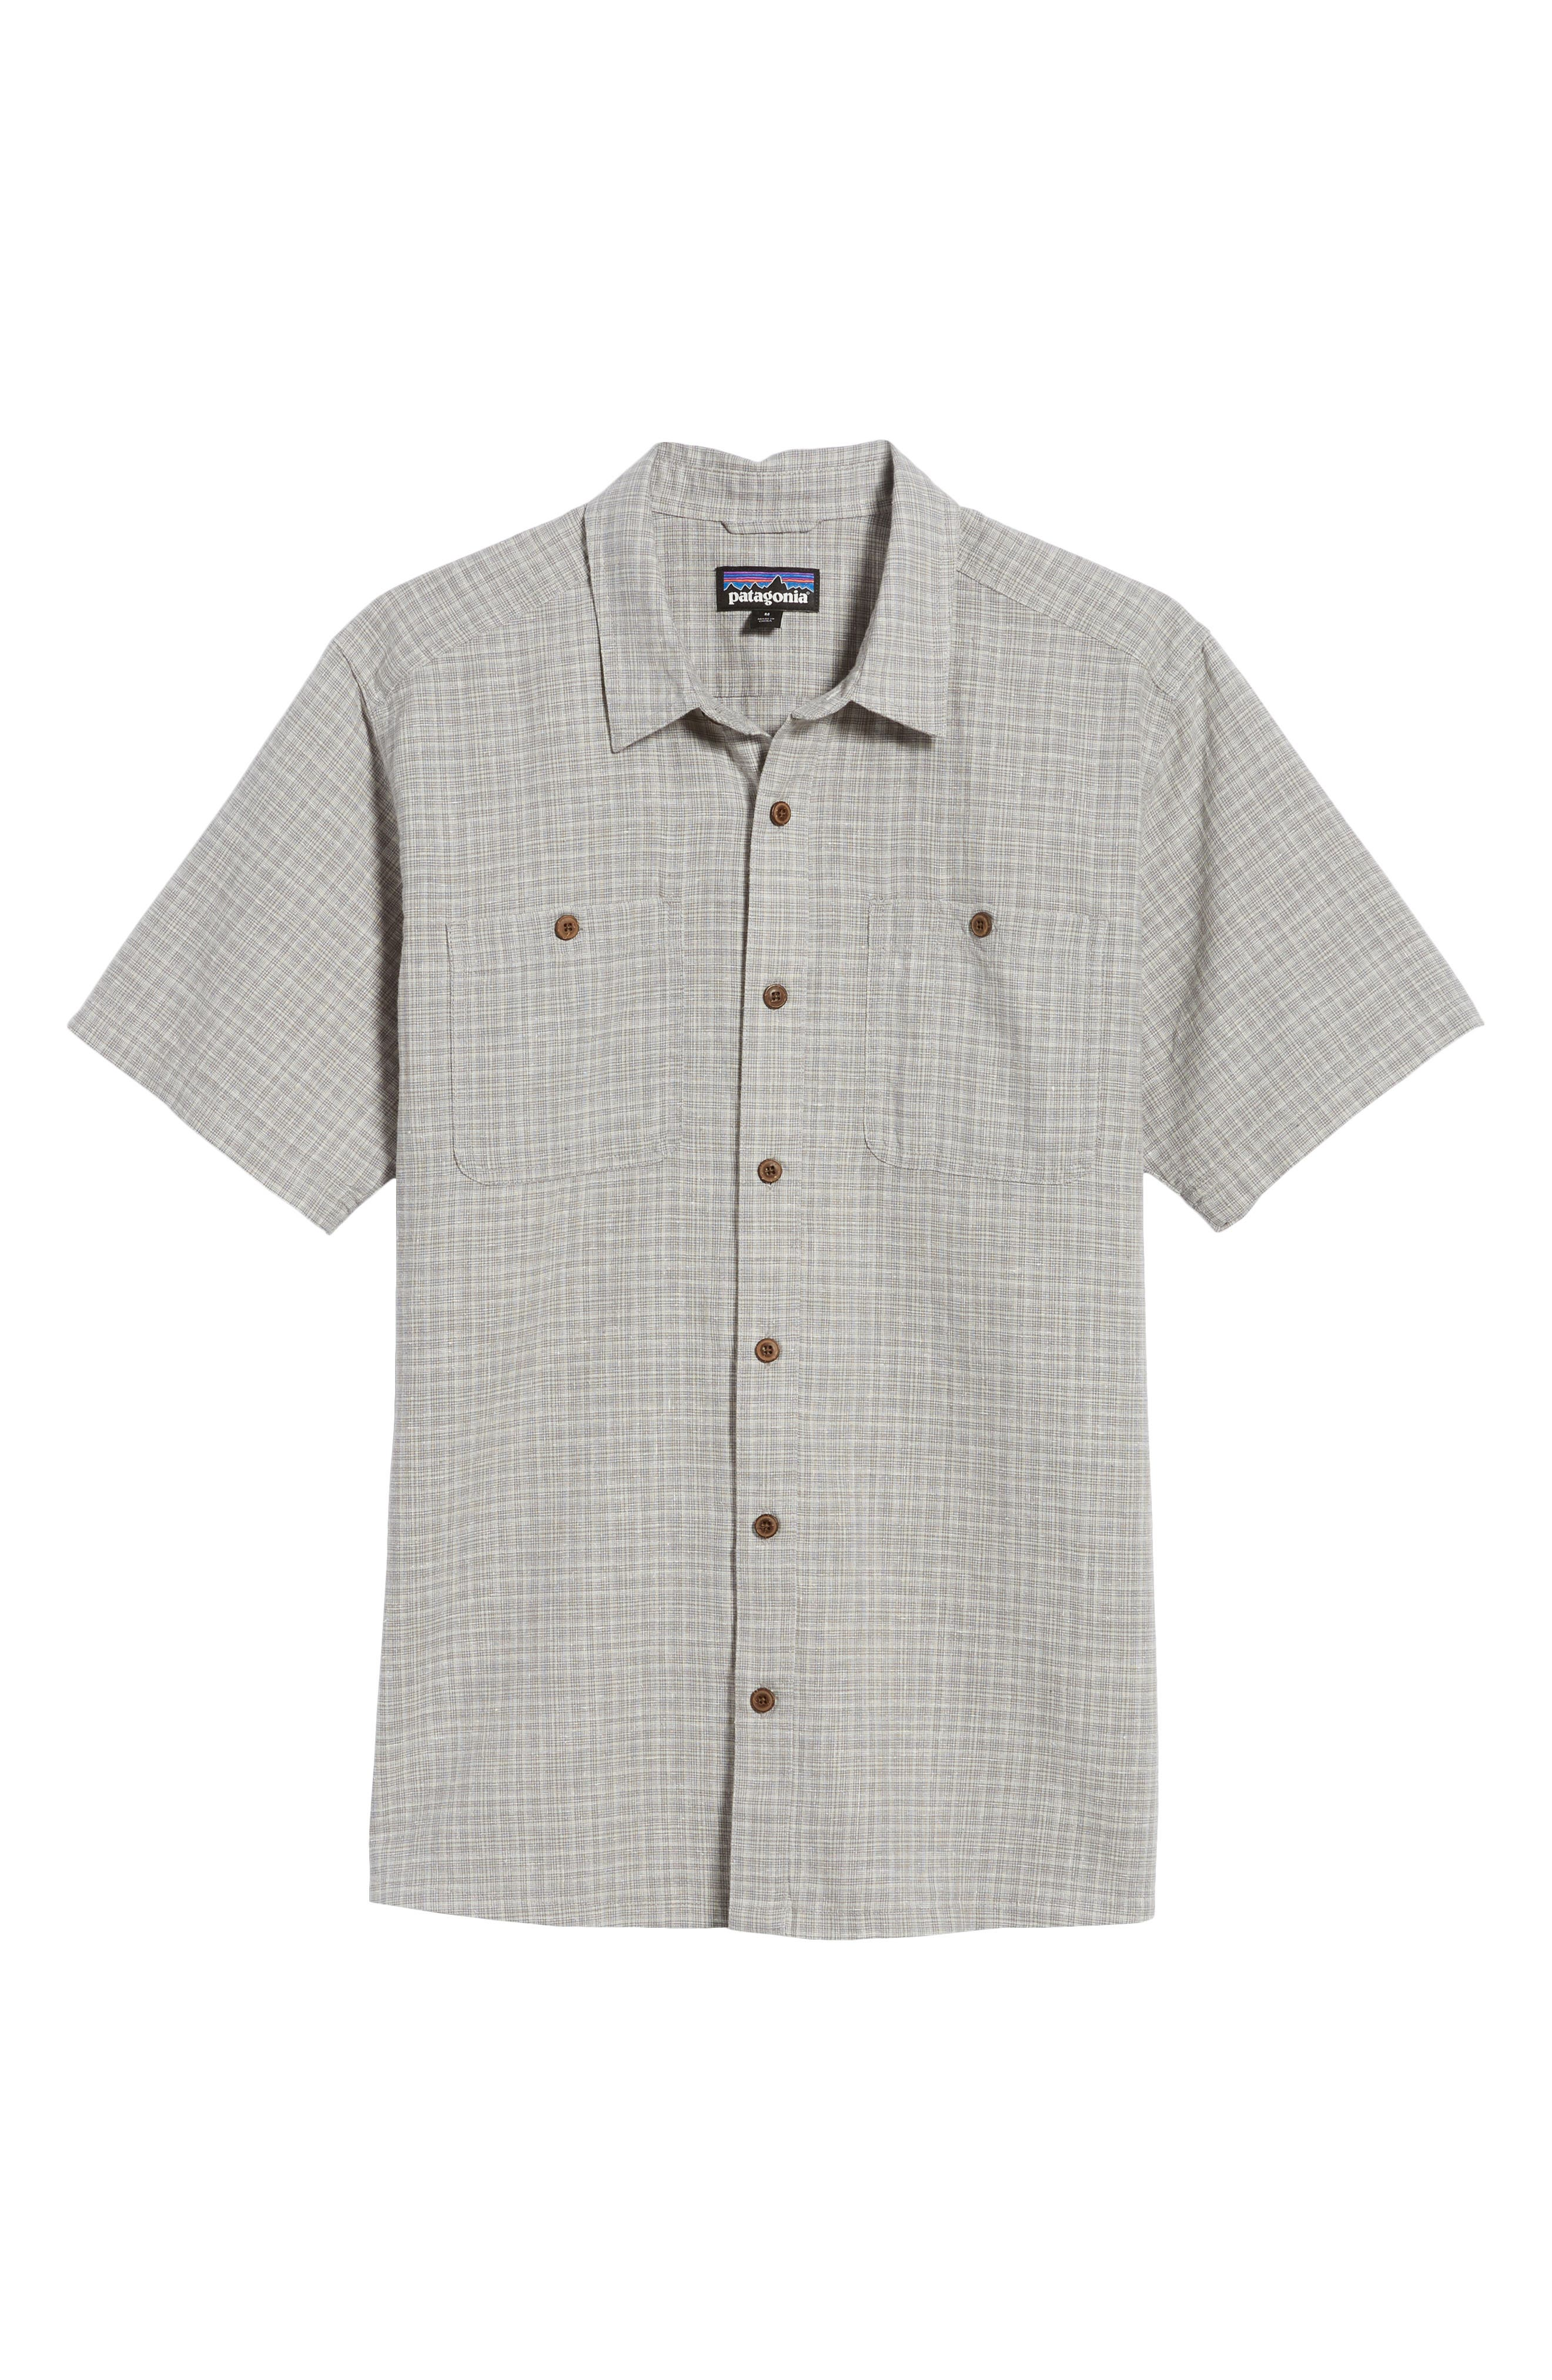 'Back Step' Regular Fit Check Short Sleeve Sport Shirt,                             Alternate thumbnail 6, color,                             Tino/ Feather Grey